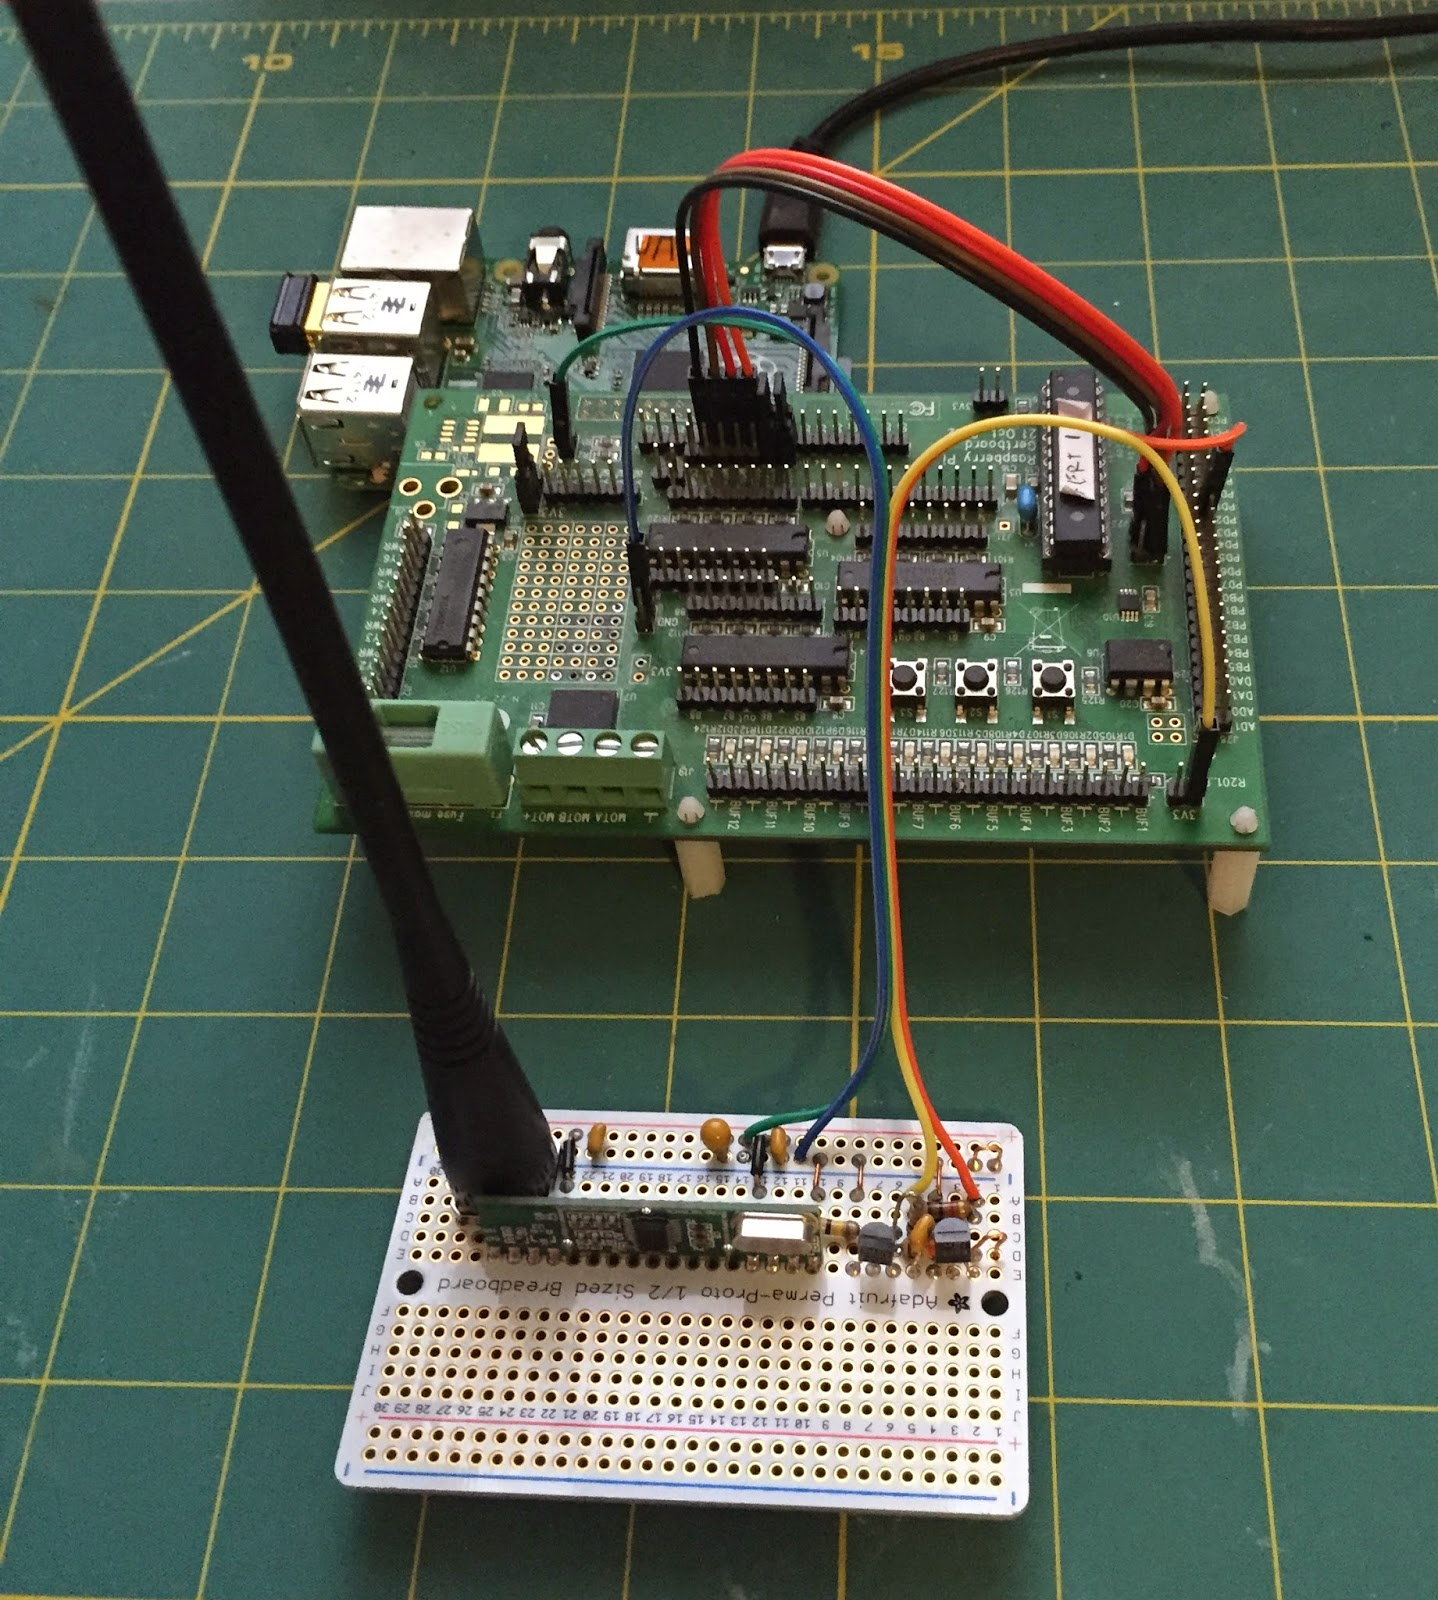 The Pi I March 2015 Thermometer Circuit With Receiver And Transmitter Electronic On Left Temperature Sensor Enclosure Right 454 Mhz Connecting To Gertboard Plugs Into Raspberrypi Seen At